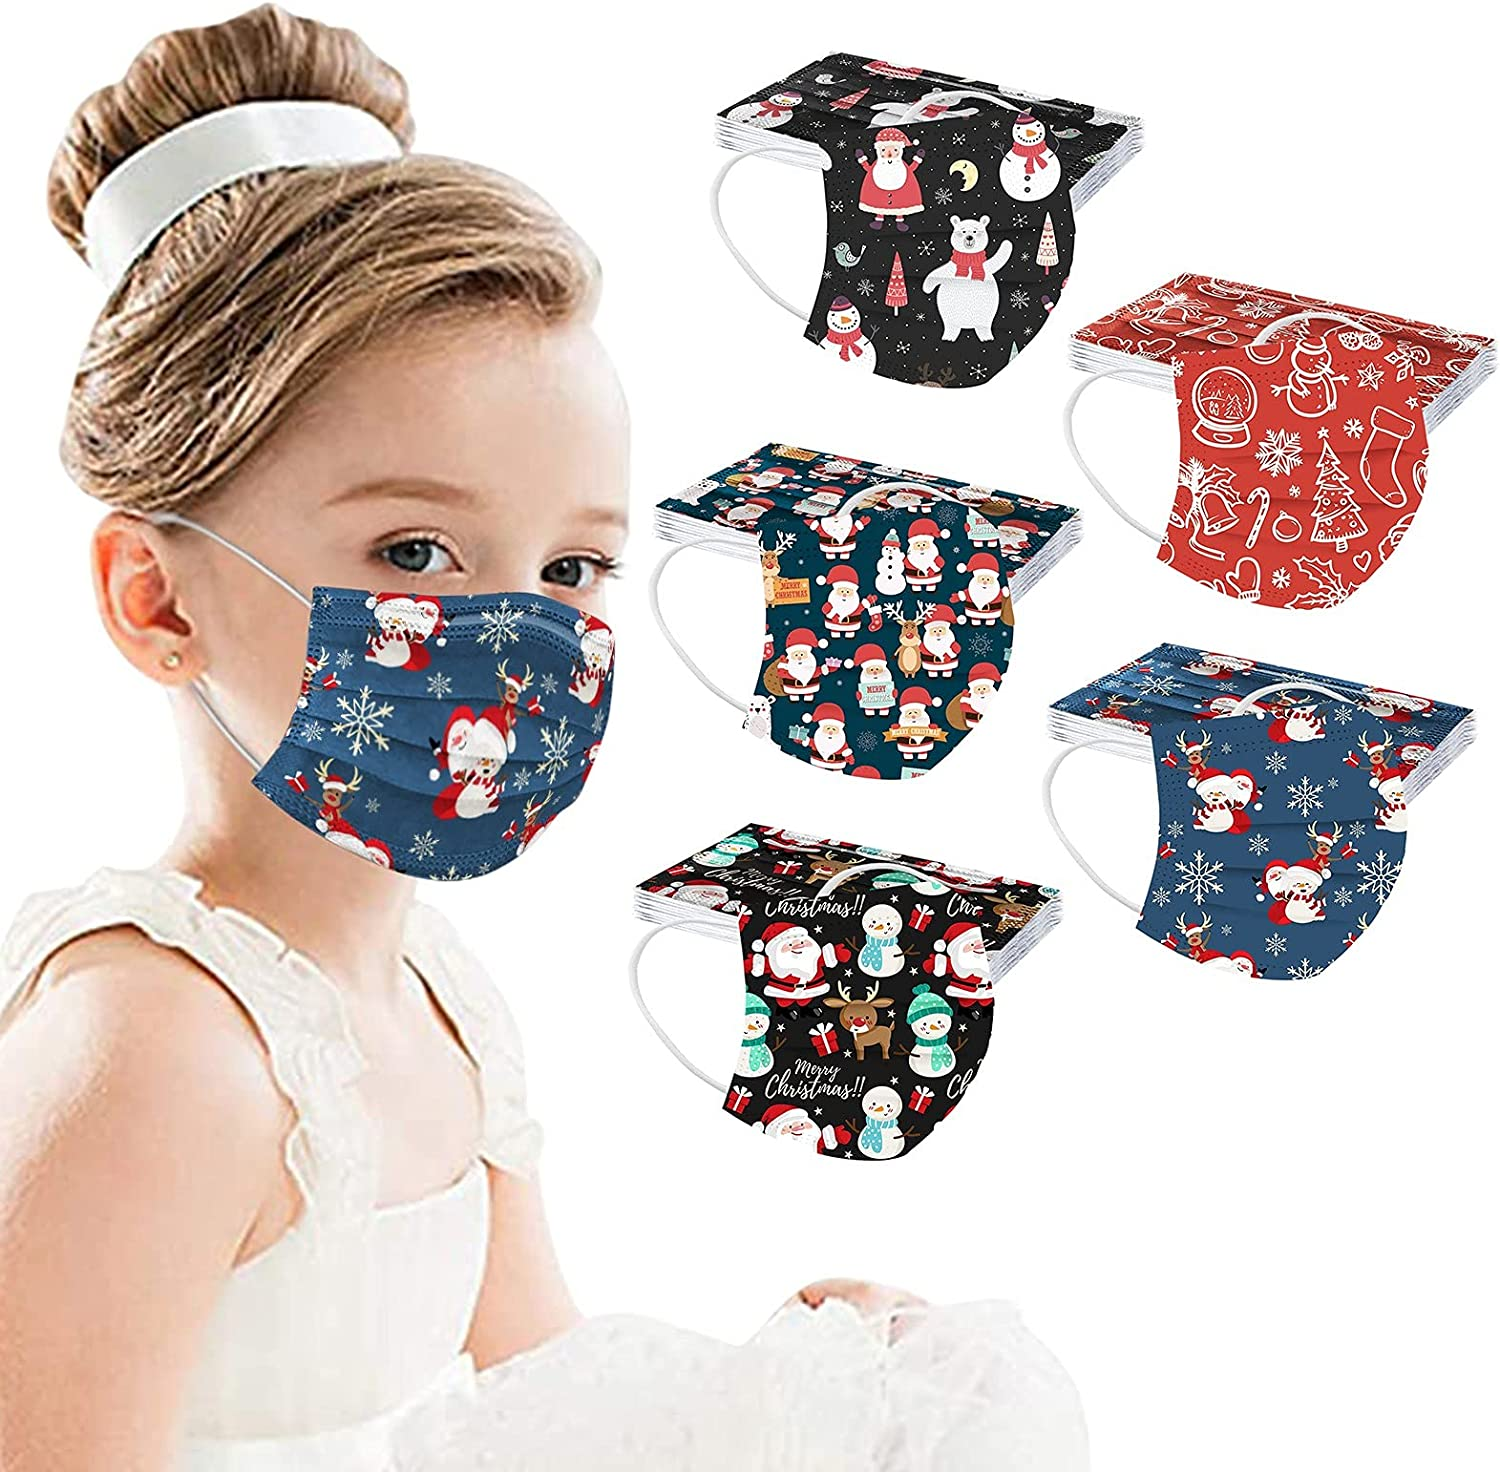 Kids Award-winning store Disposable Face Masks Mix 50 3 Christmas mask Quantity limited pack Layers